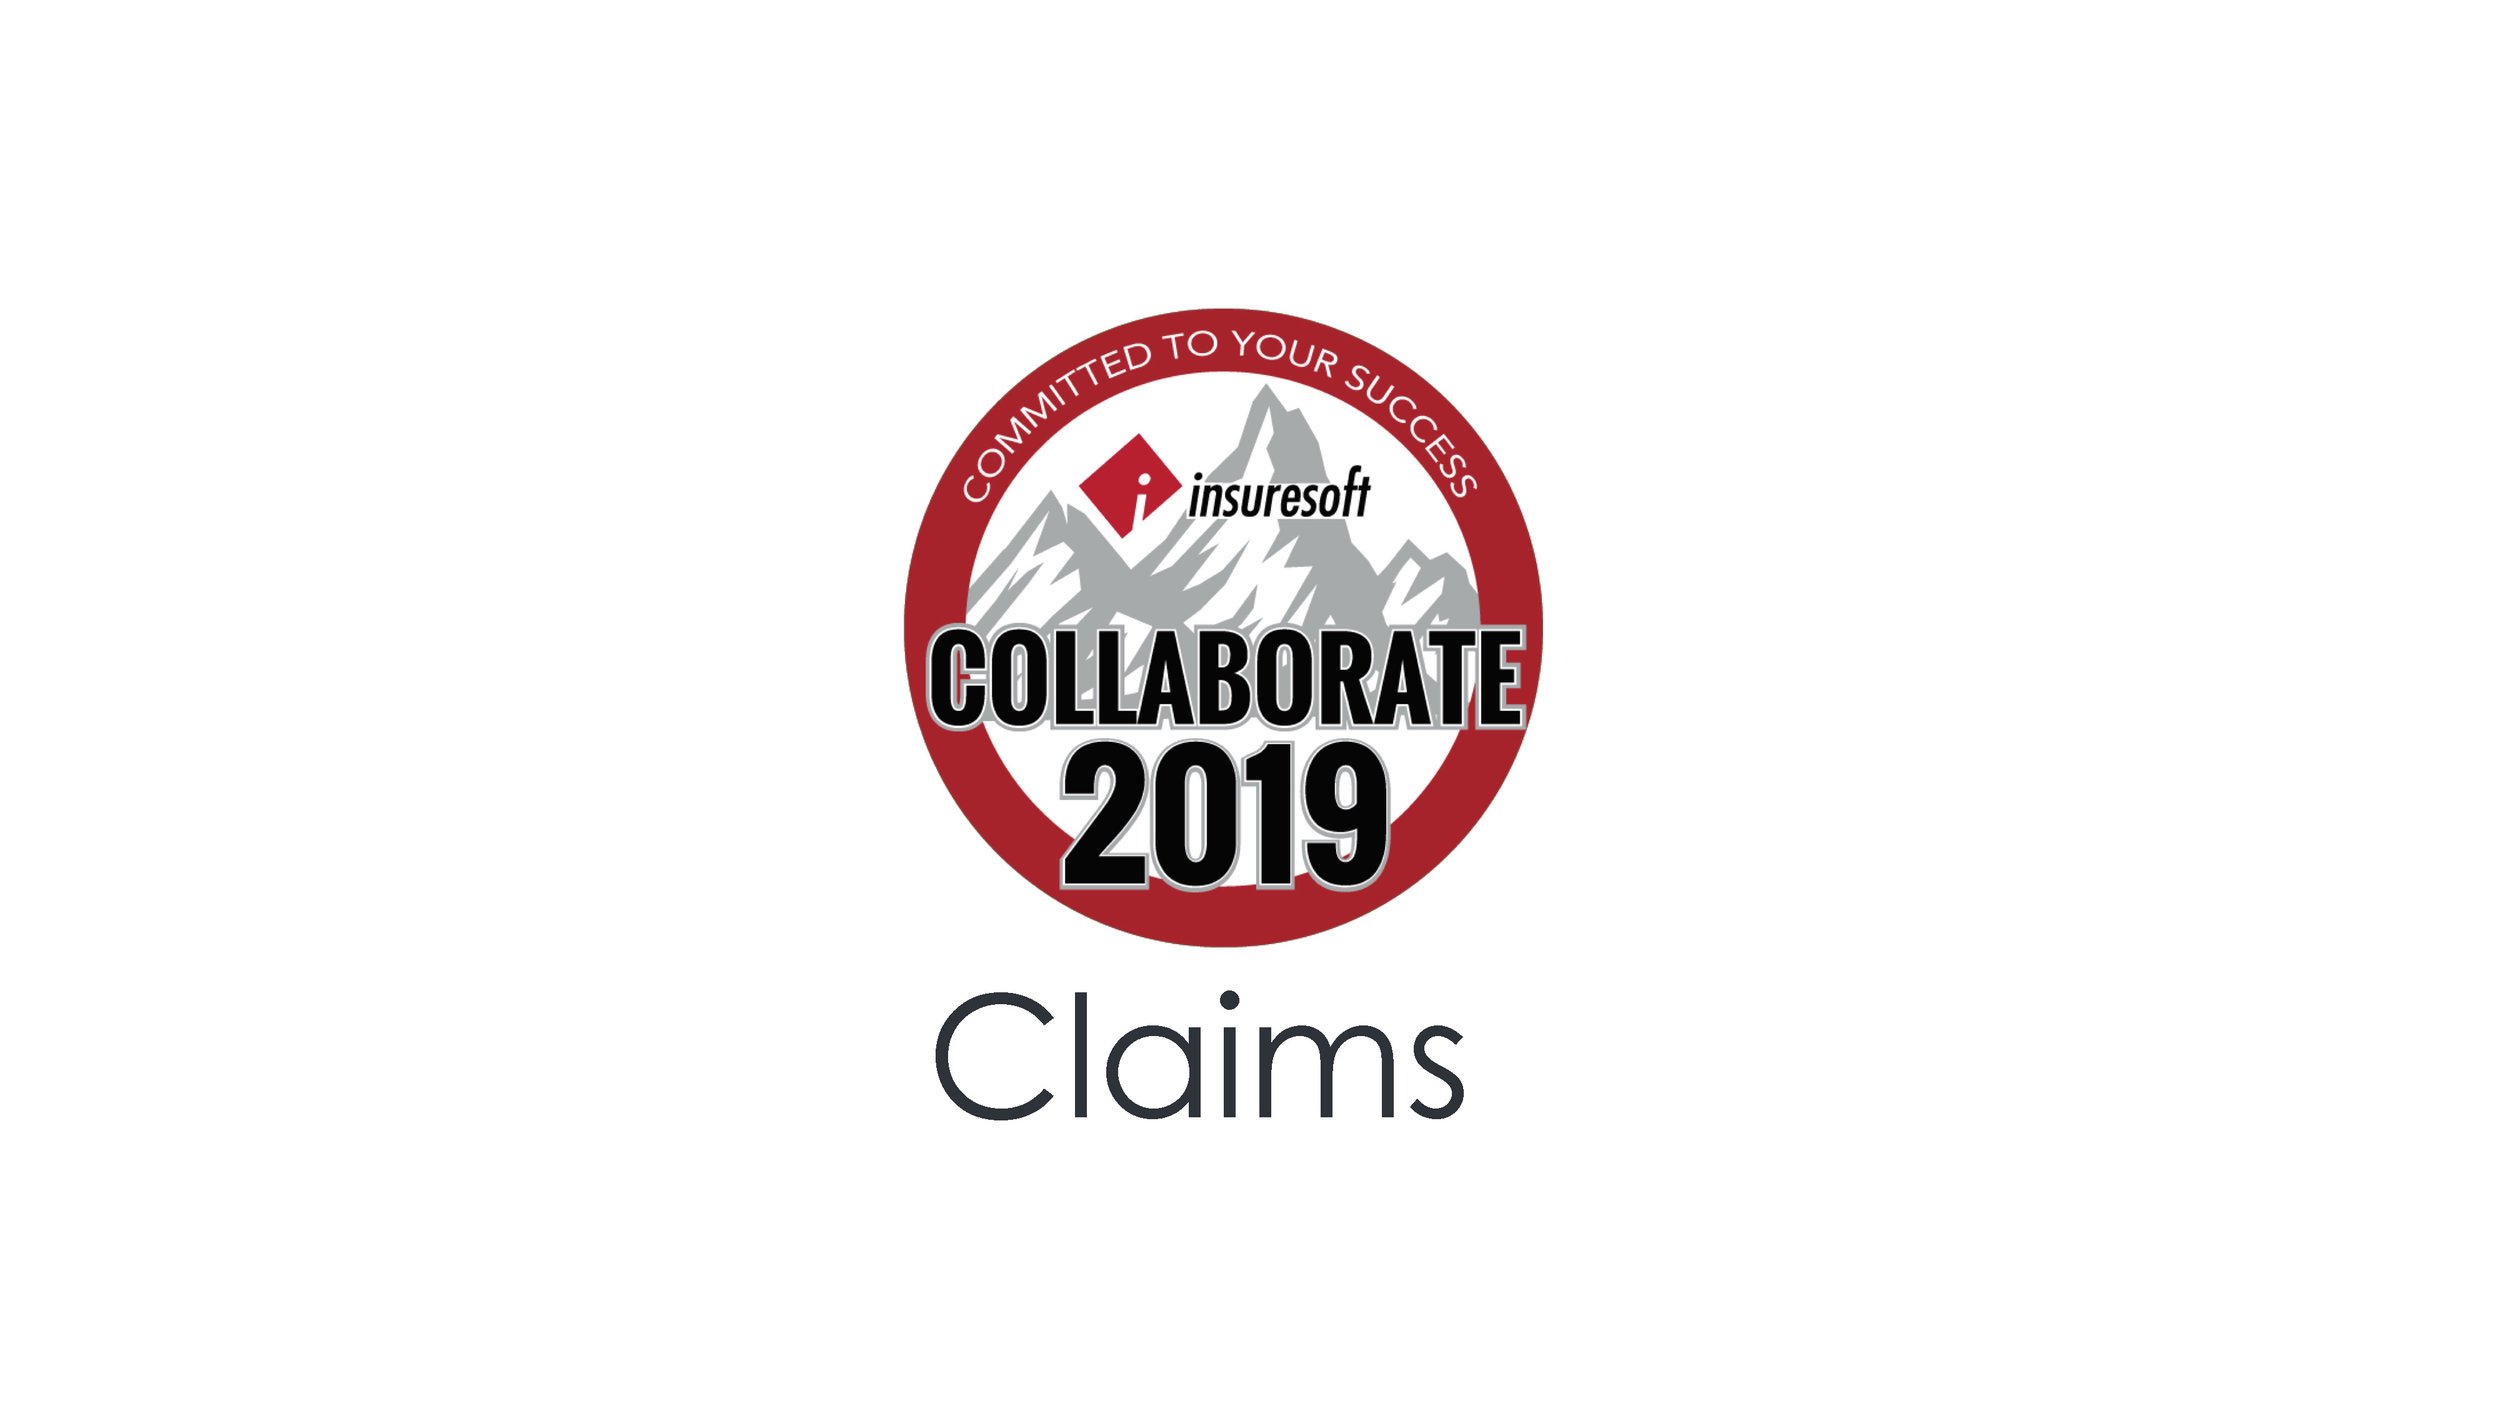 Claims Presentation & Roundtable